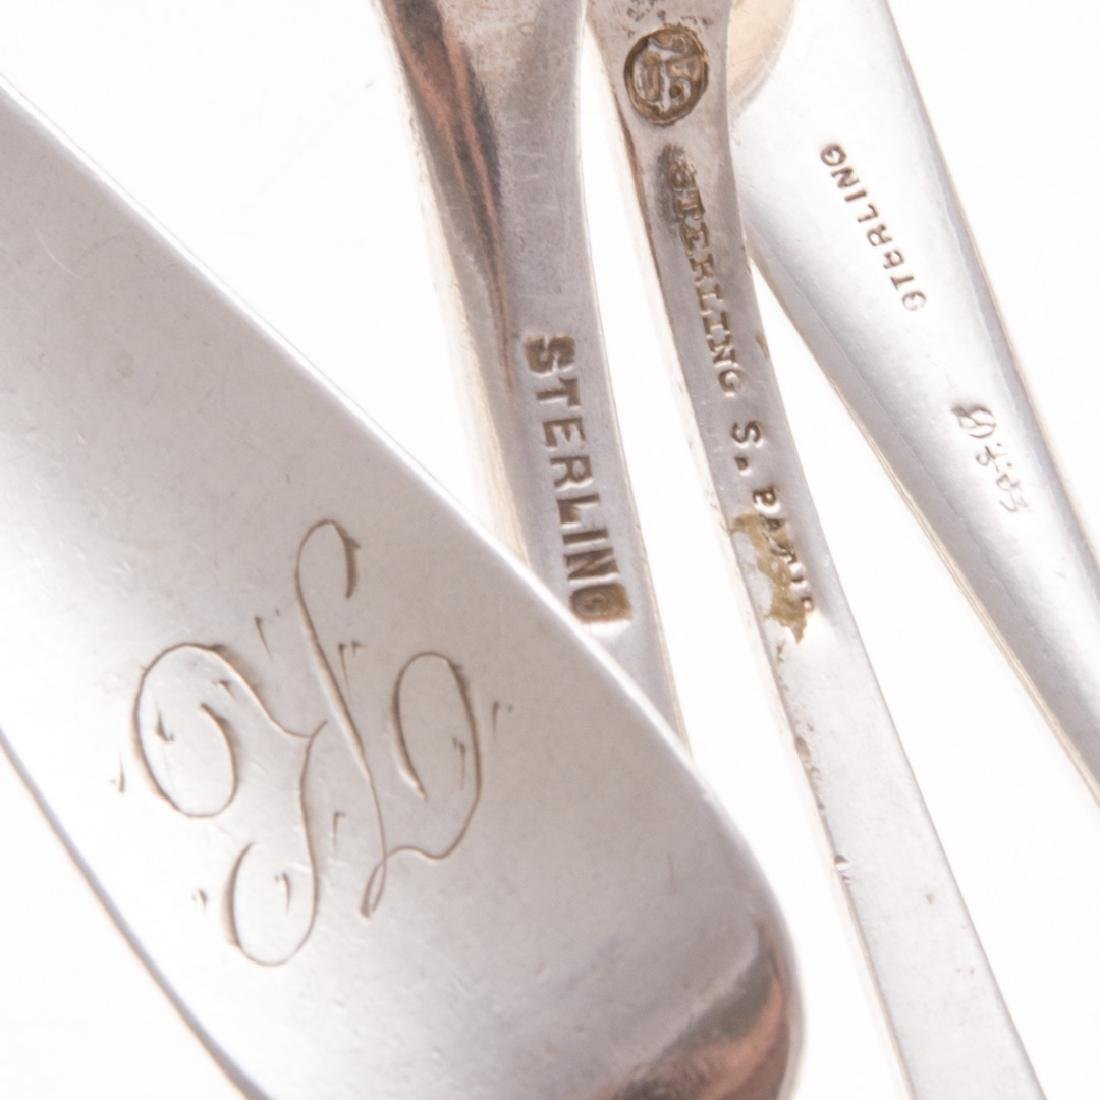 A collection of American sterling flatware - 4